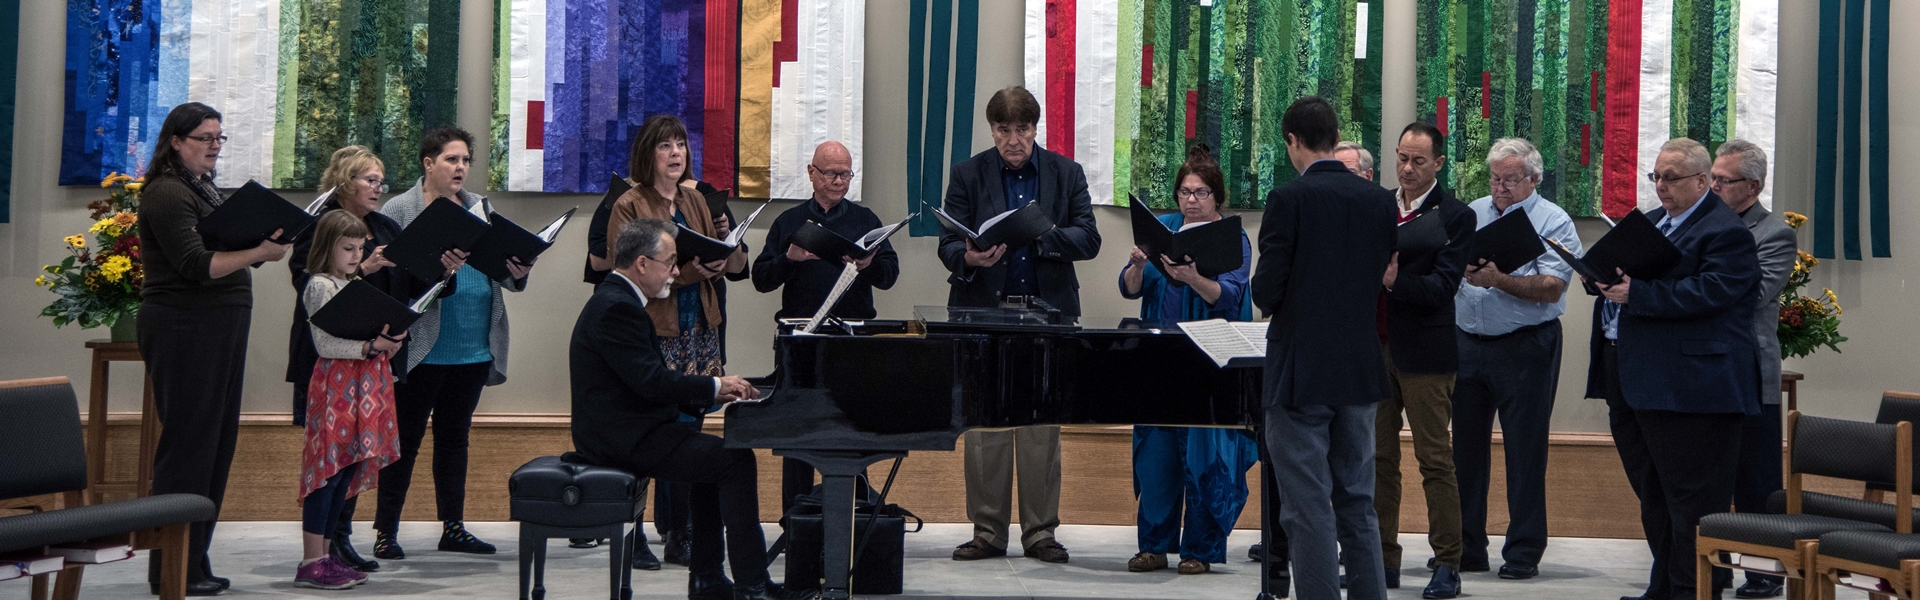 Concerts – First Lutheran Church